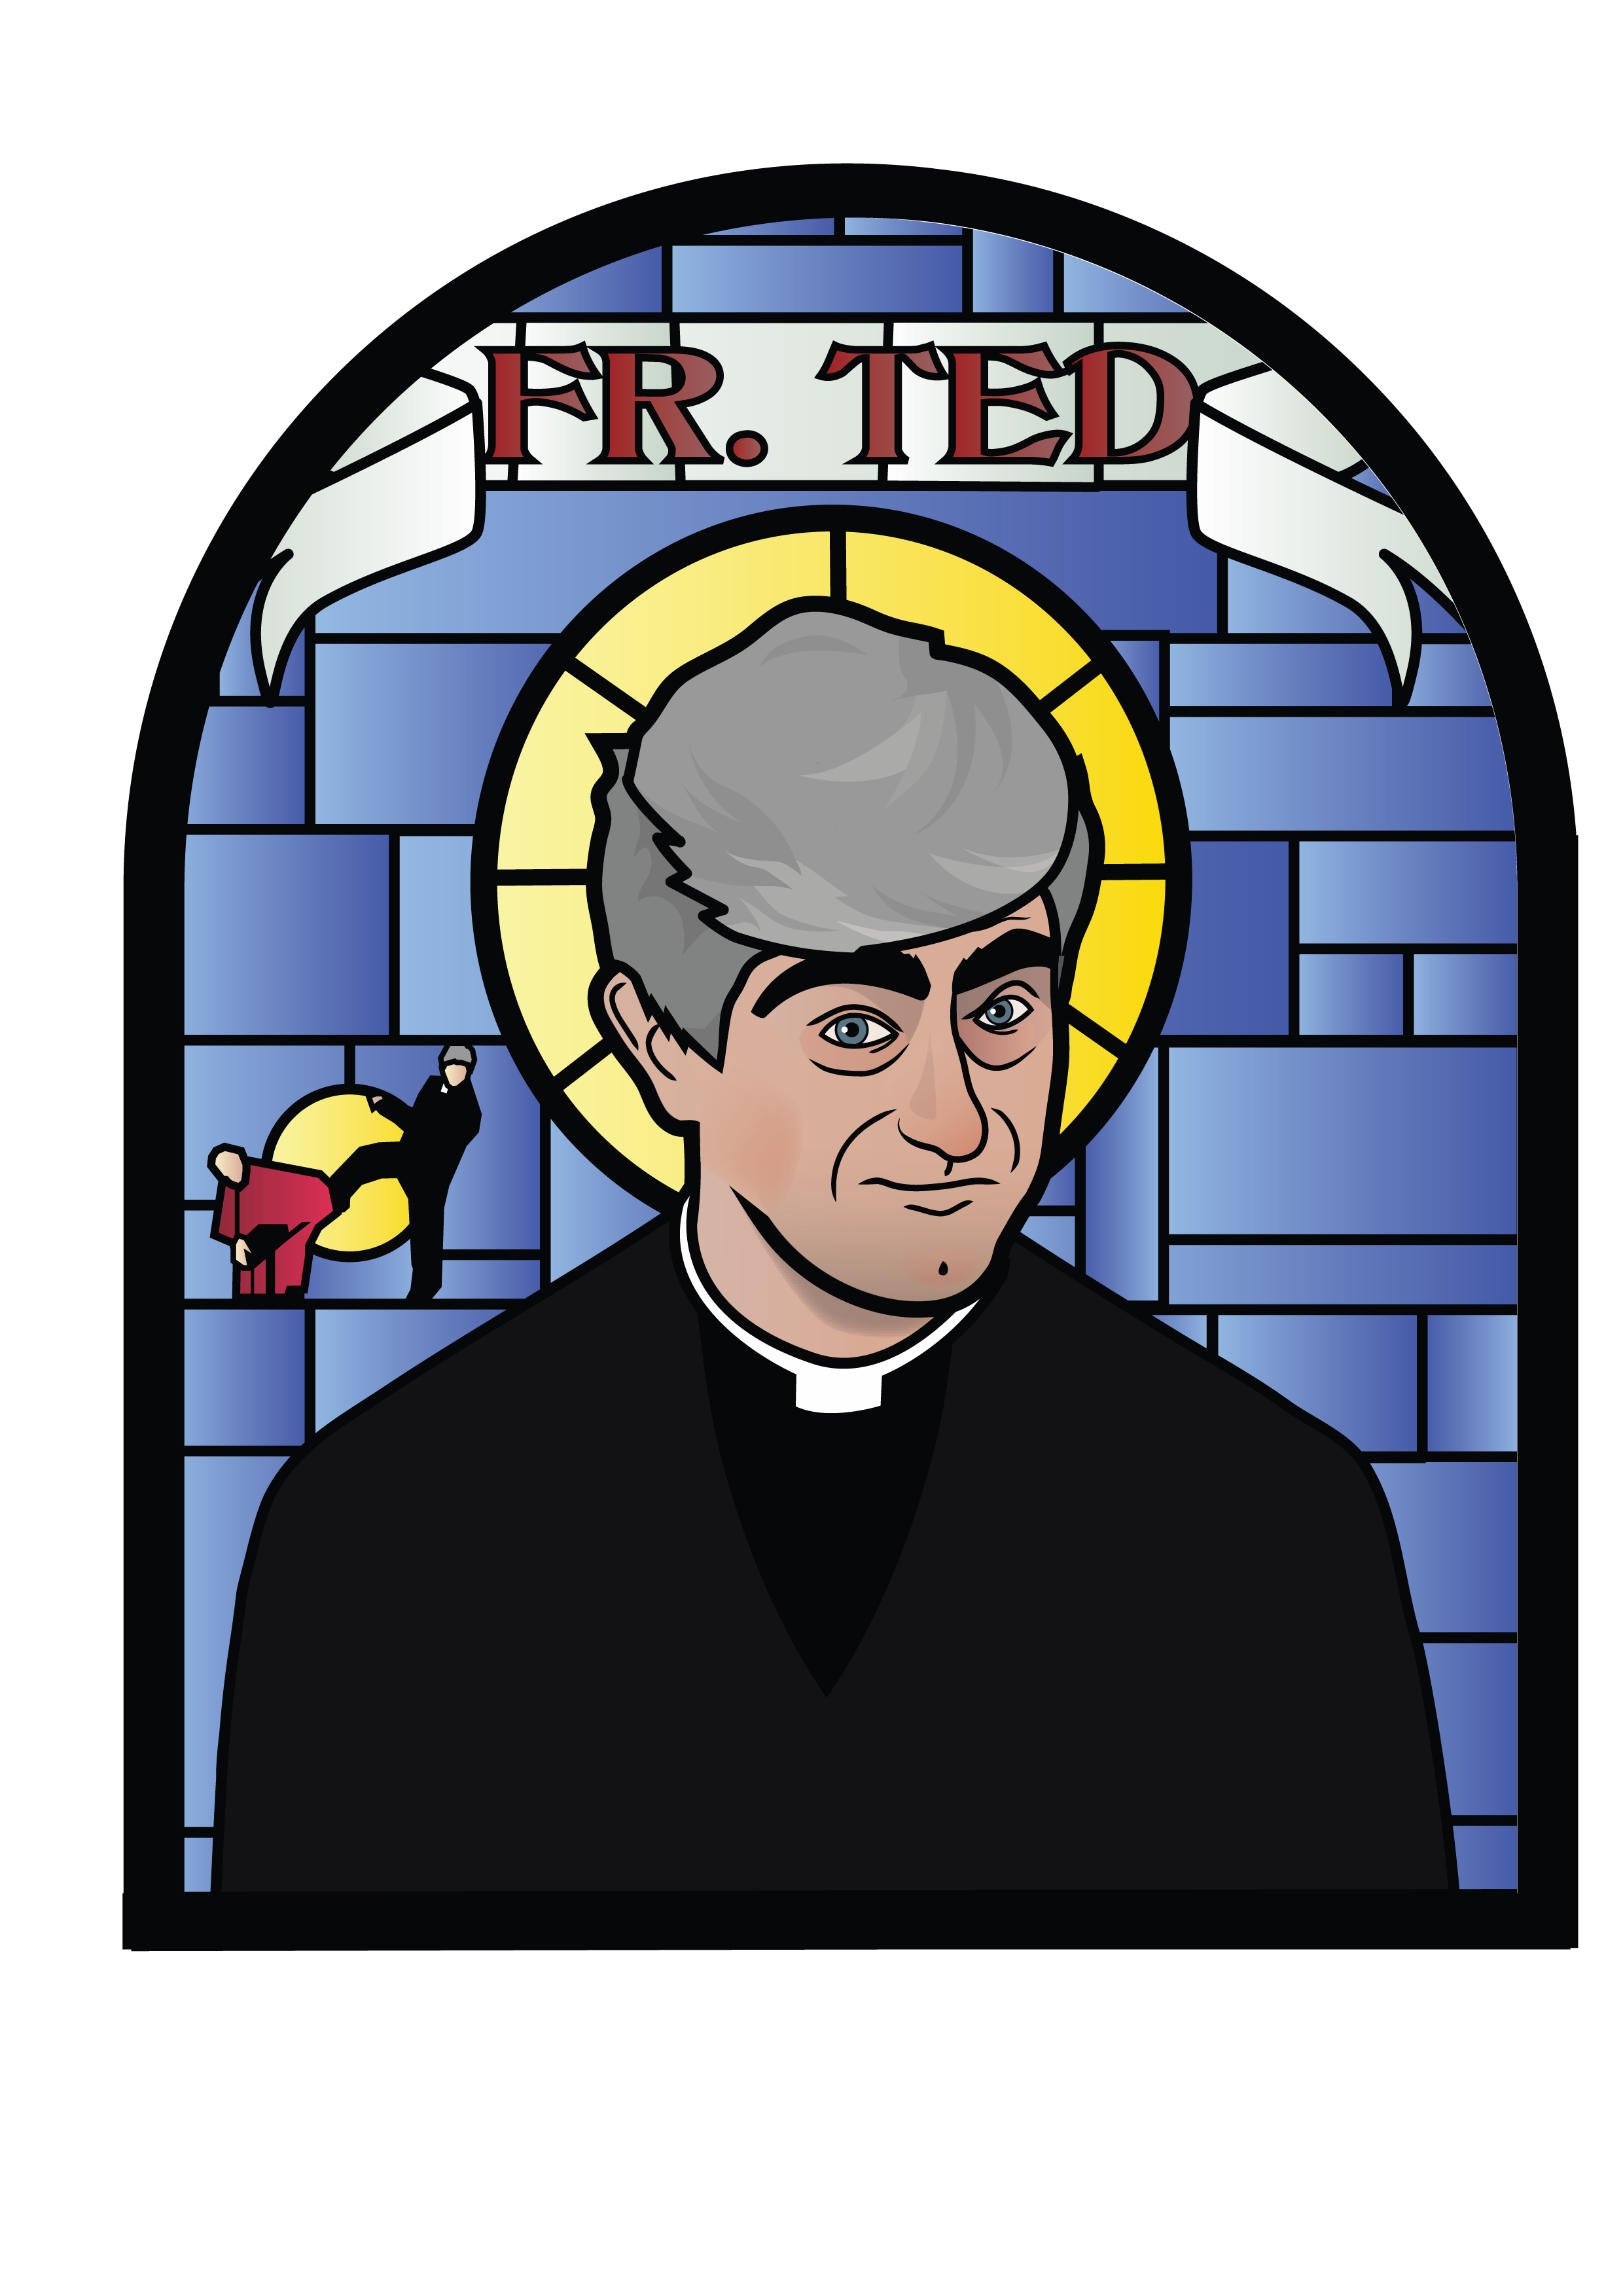 FR_TED-01